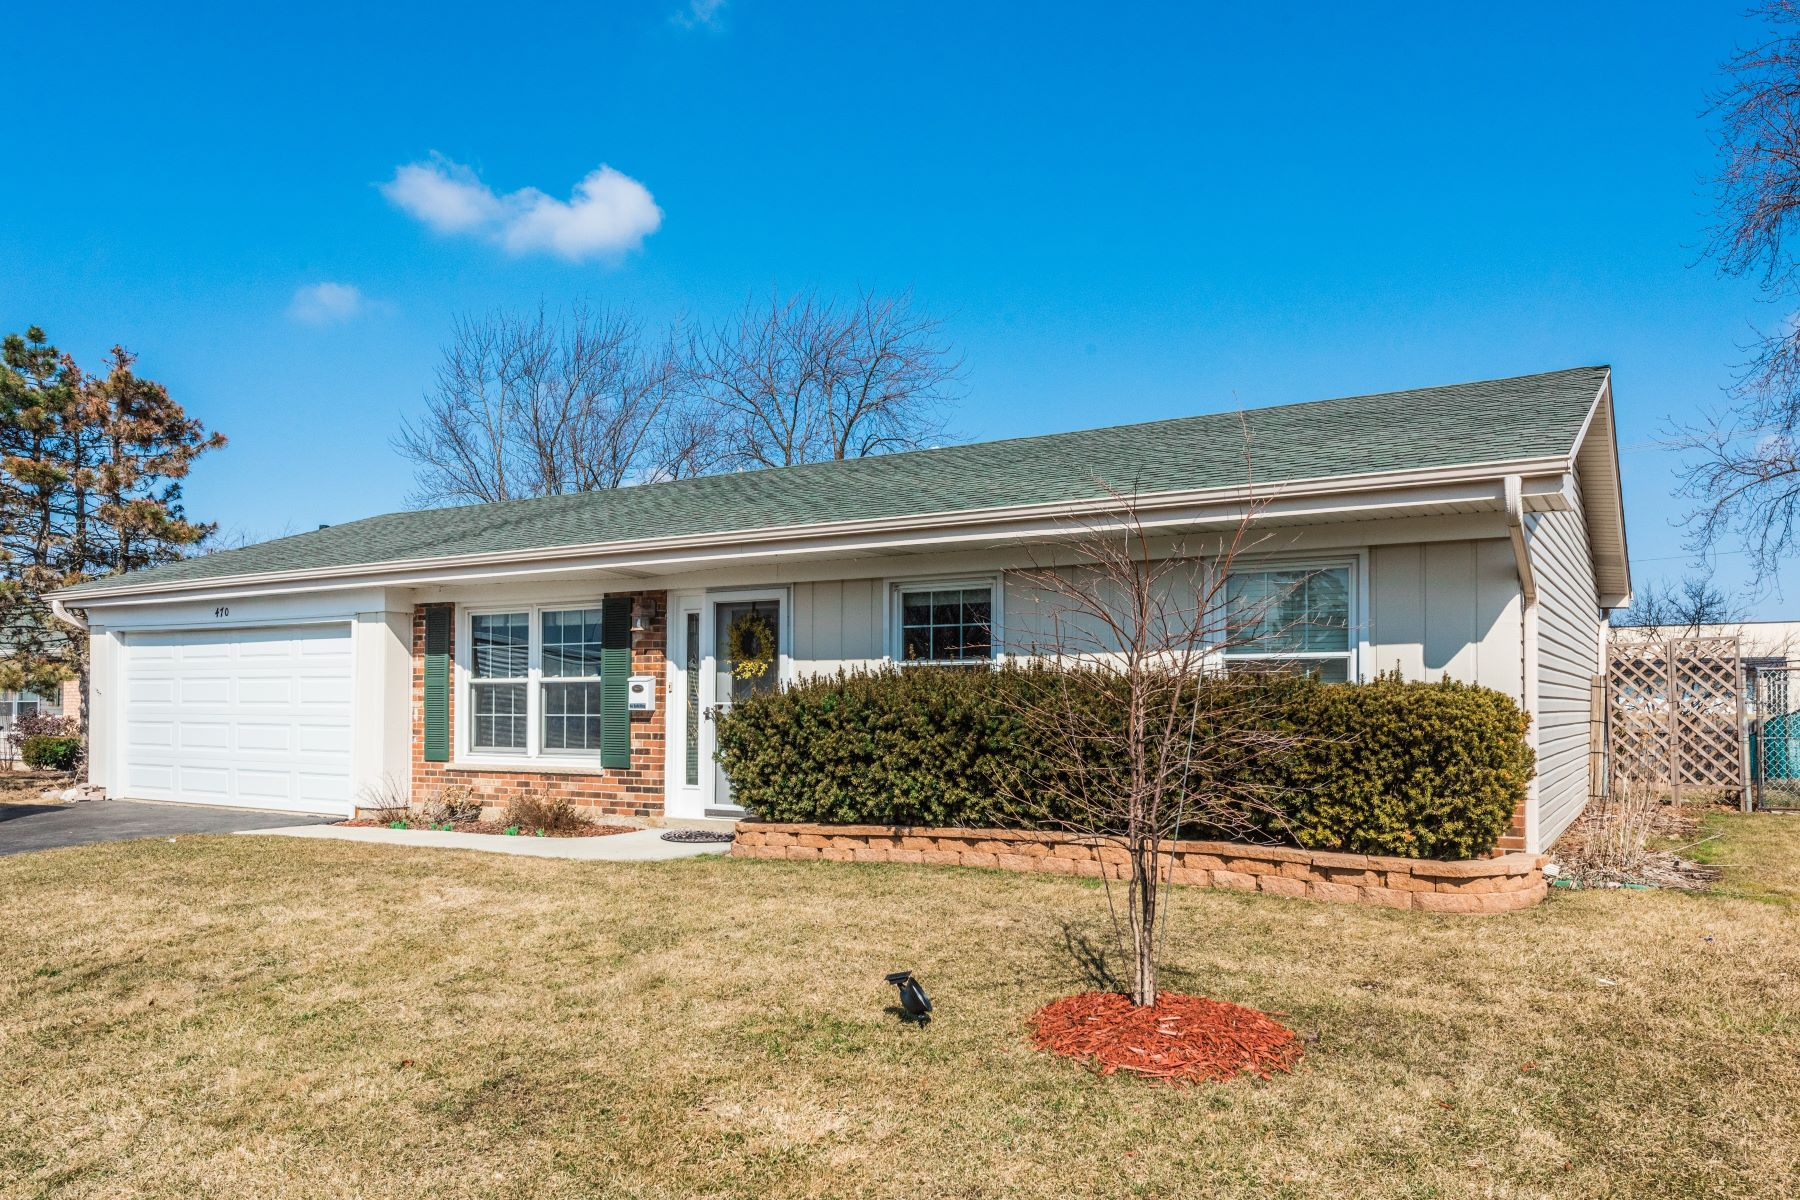 Single Family Home for Sale at Old Mill Grove Subdivision 470 Burr Oak Drive Lake Zurich, Illinois 60047 United States